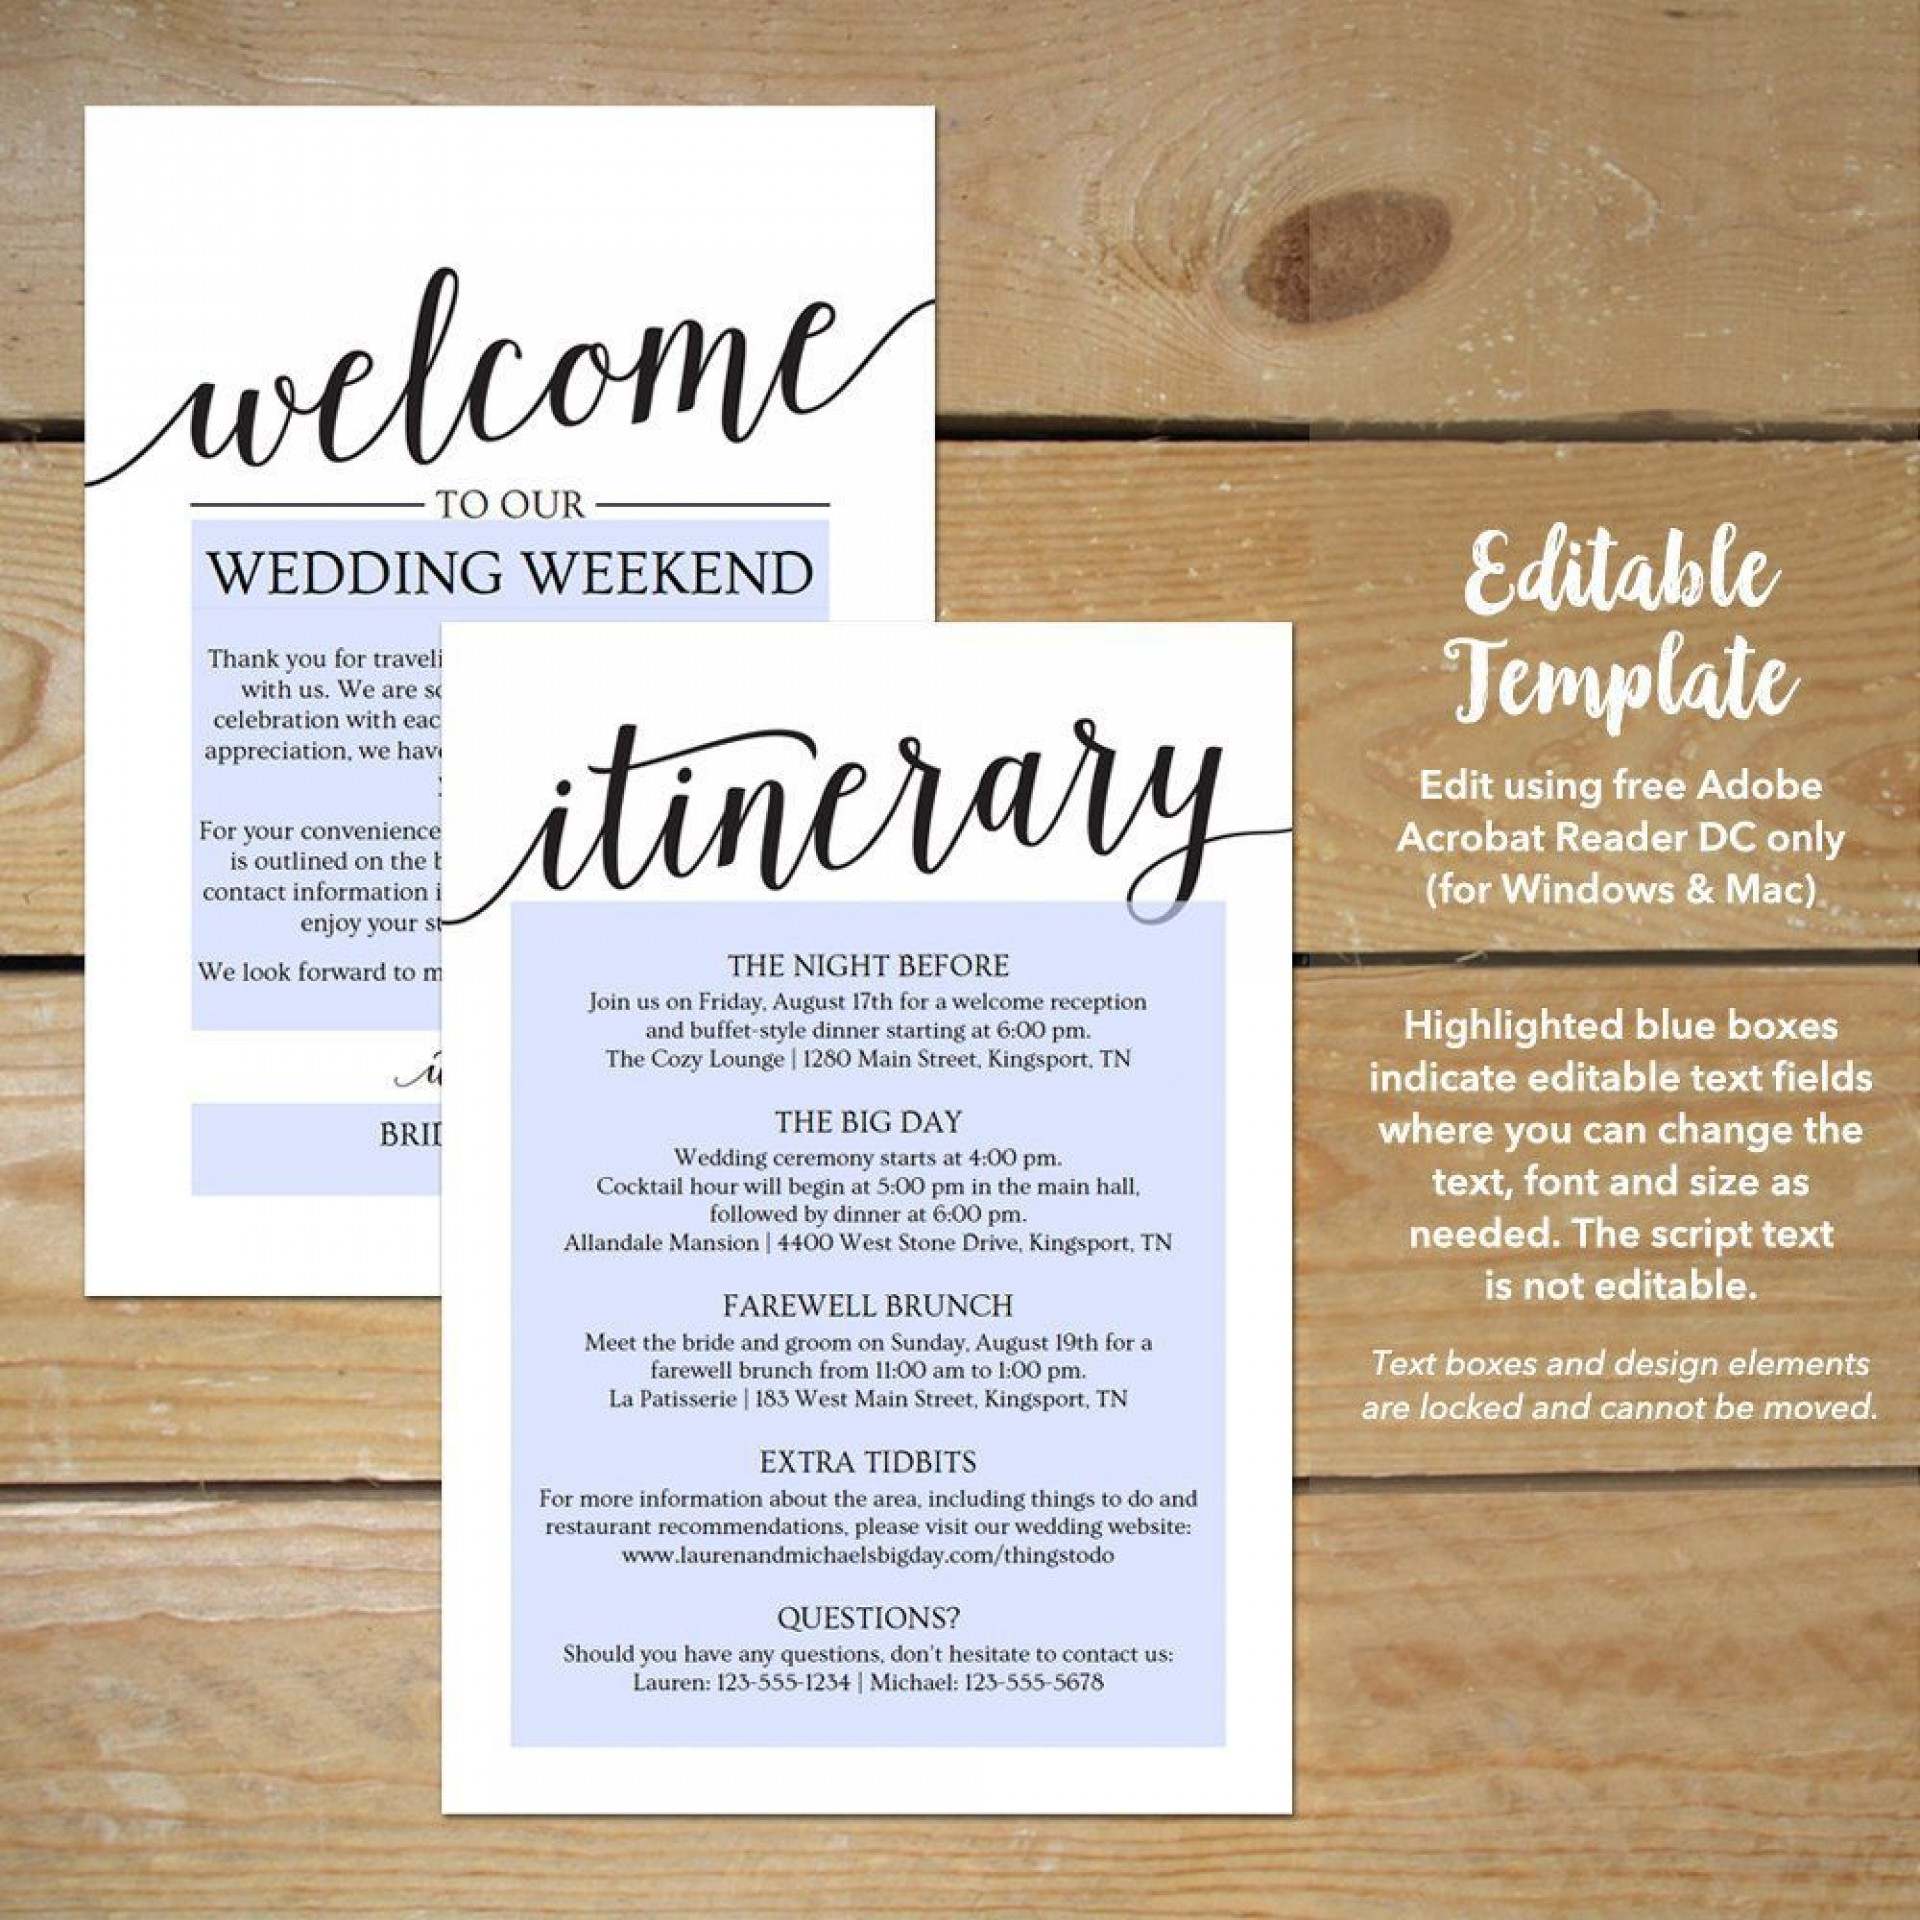 004 Fascinating Destination Wedding Welcome Letter And Itinerary Template High Def 1920